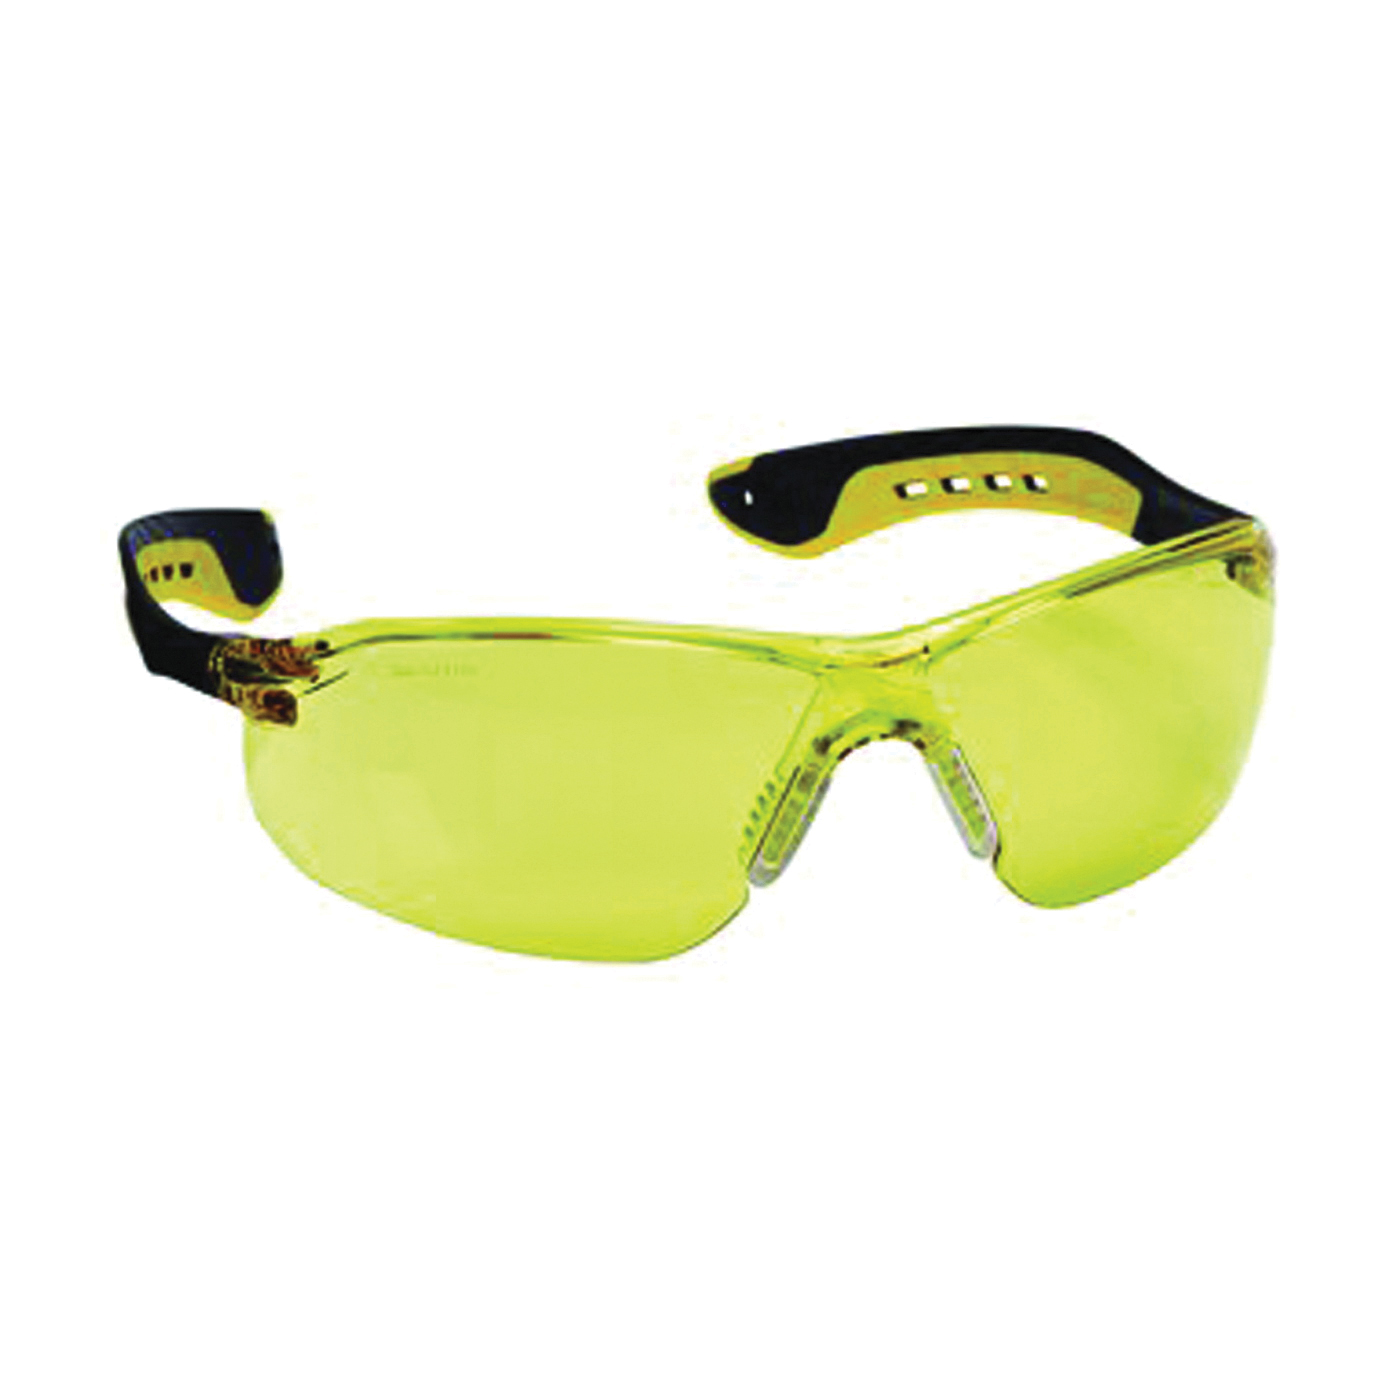 Picture of 3M 47013-WV6 Safety Glasses, Anti-Fog, Anti-Scratch Lens, Black/Yellow Frame